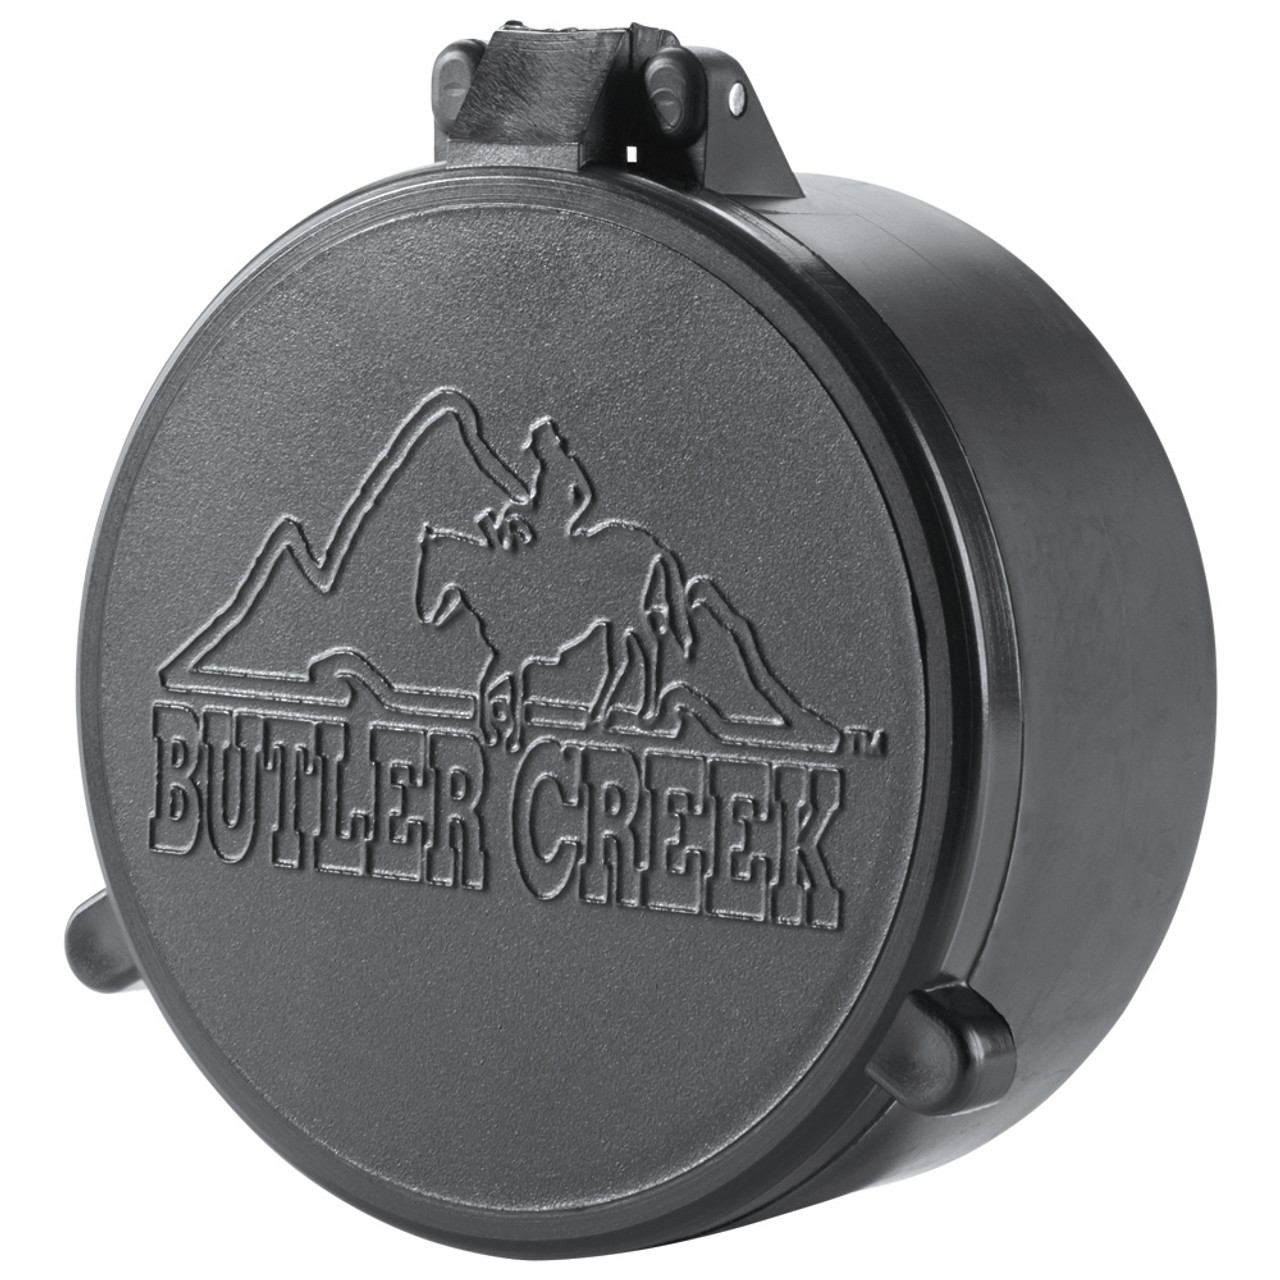 2062ad1ce76a3 Multiflex Flip-Open Scope Cover - Objective Lens - Butler Creek